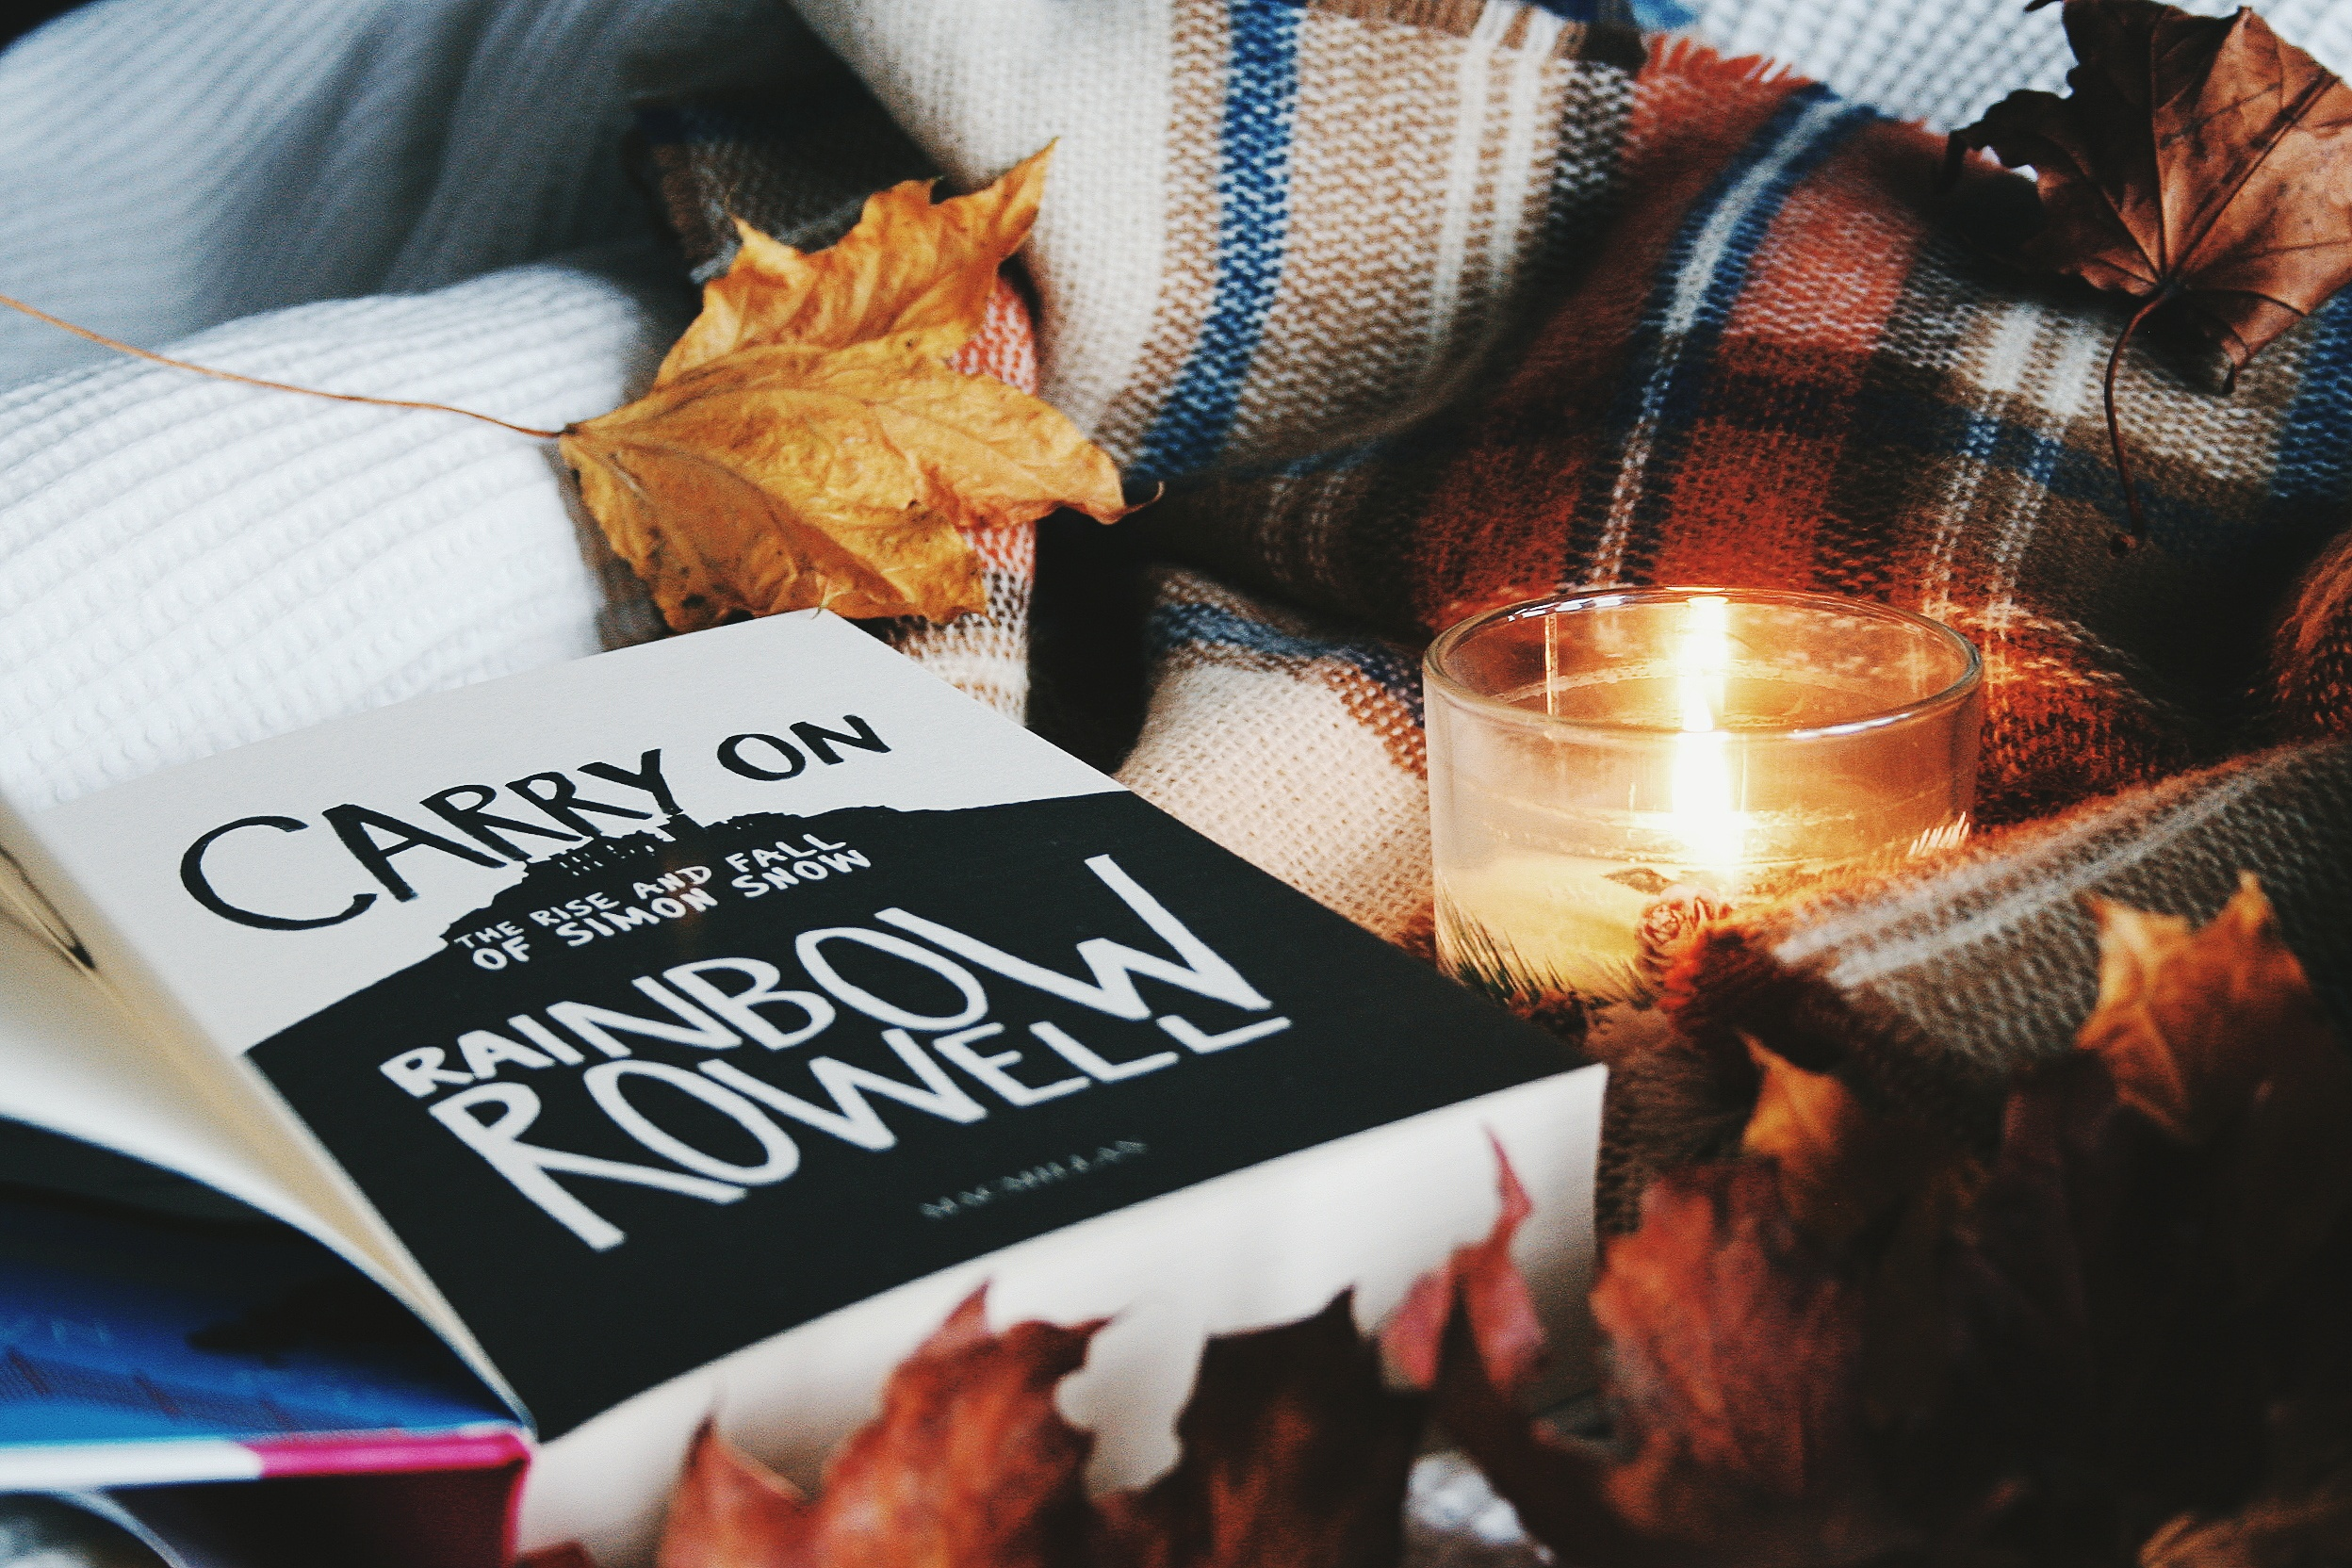 the book carry on by rainbow rowell with a tartan scarf some leaves and a candle